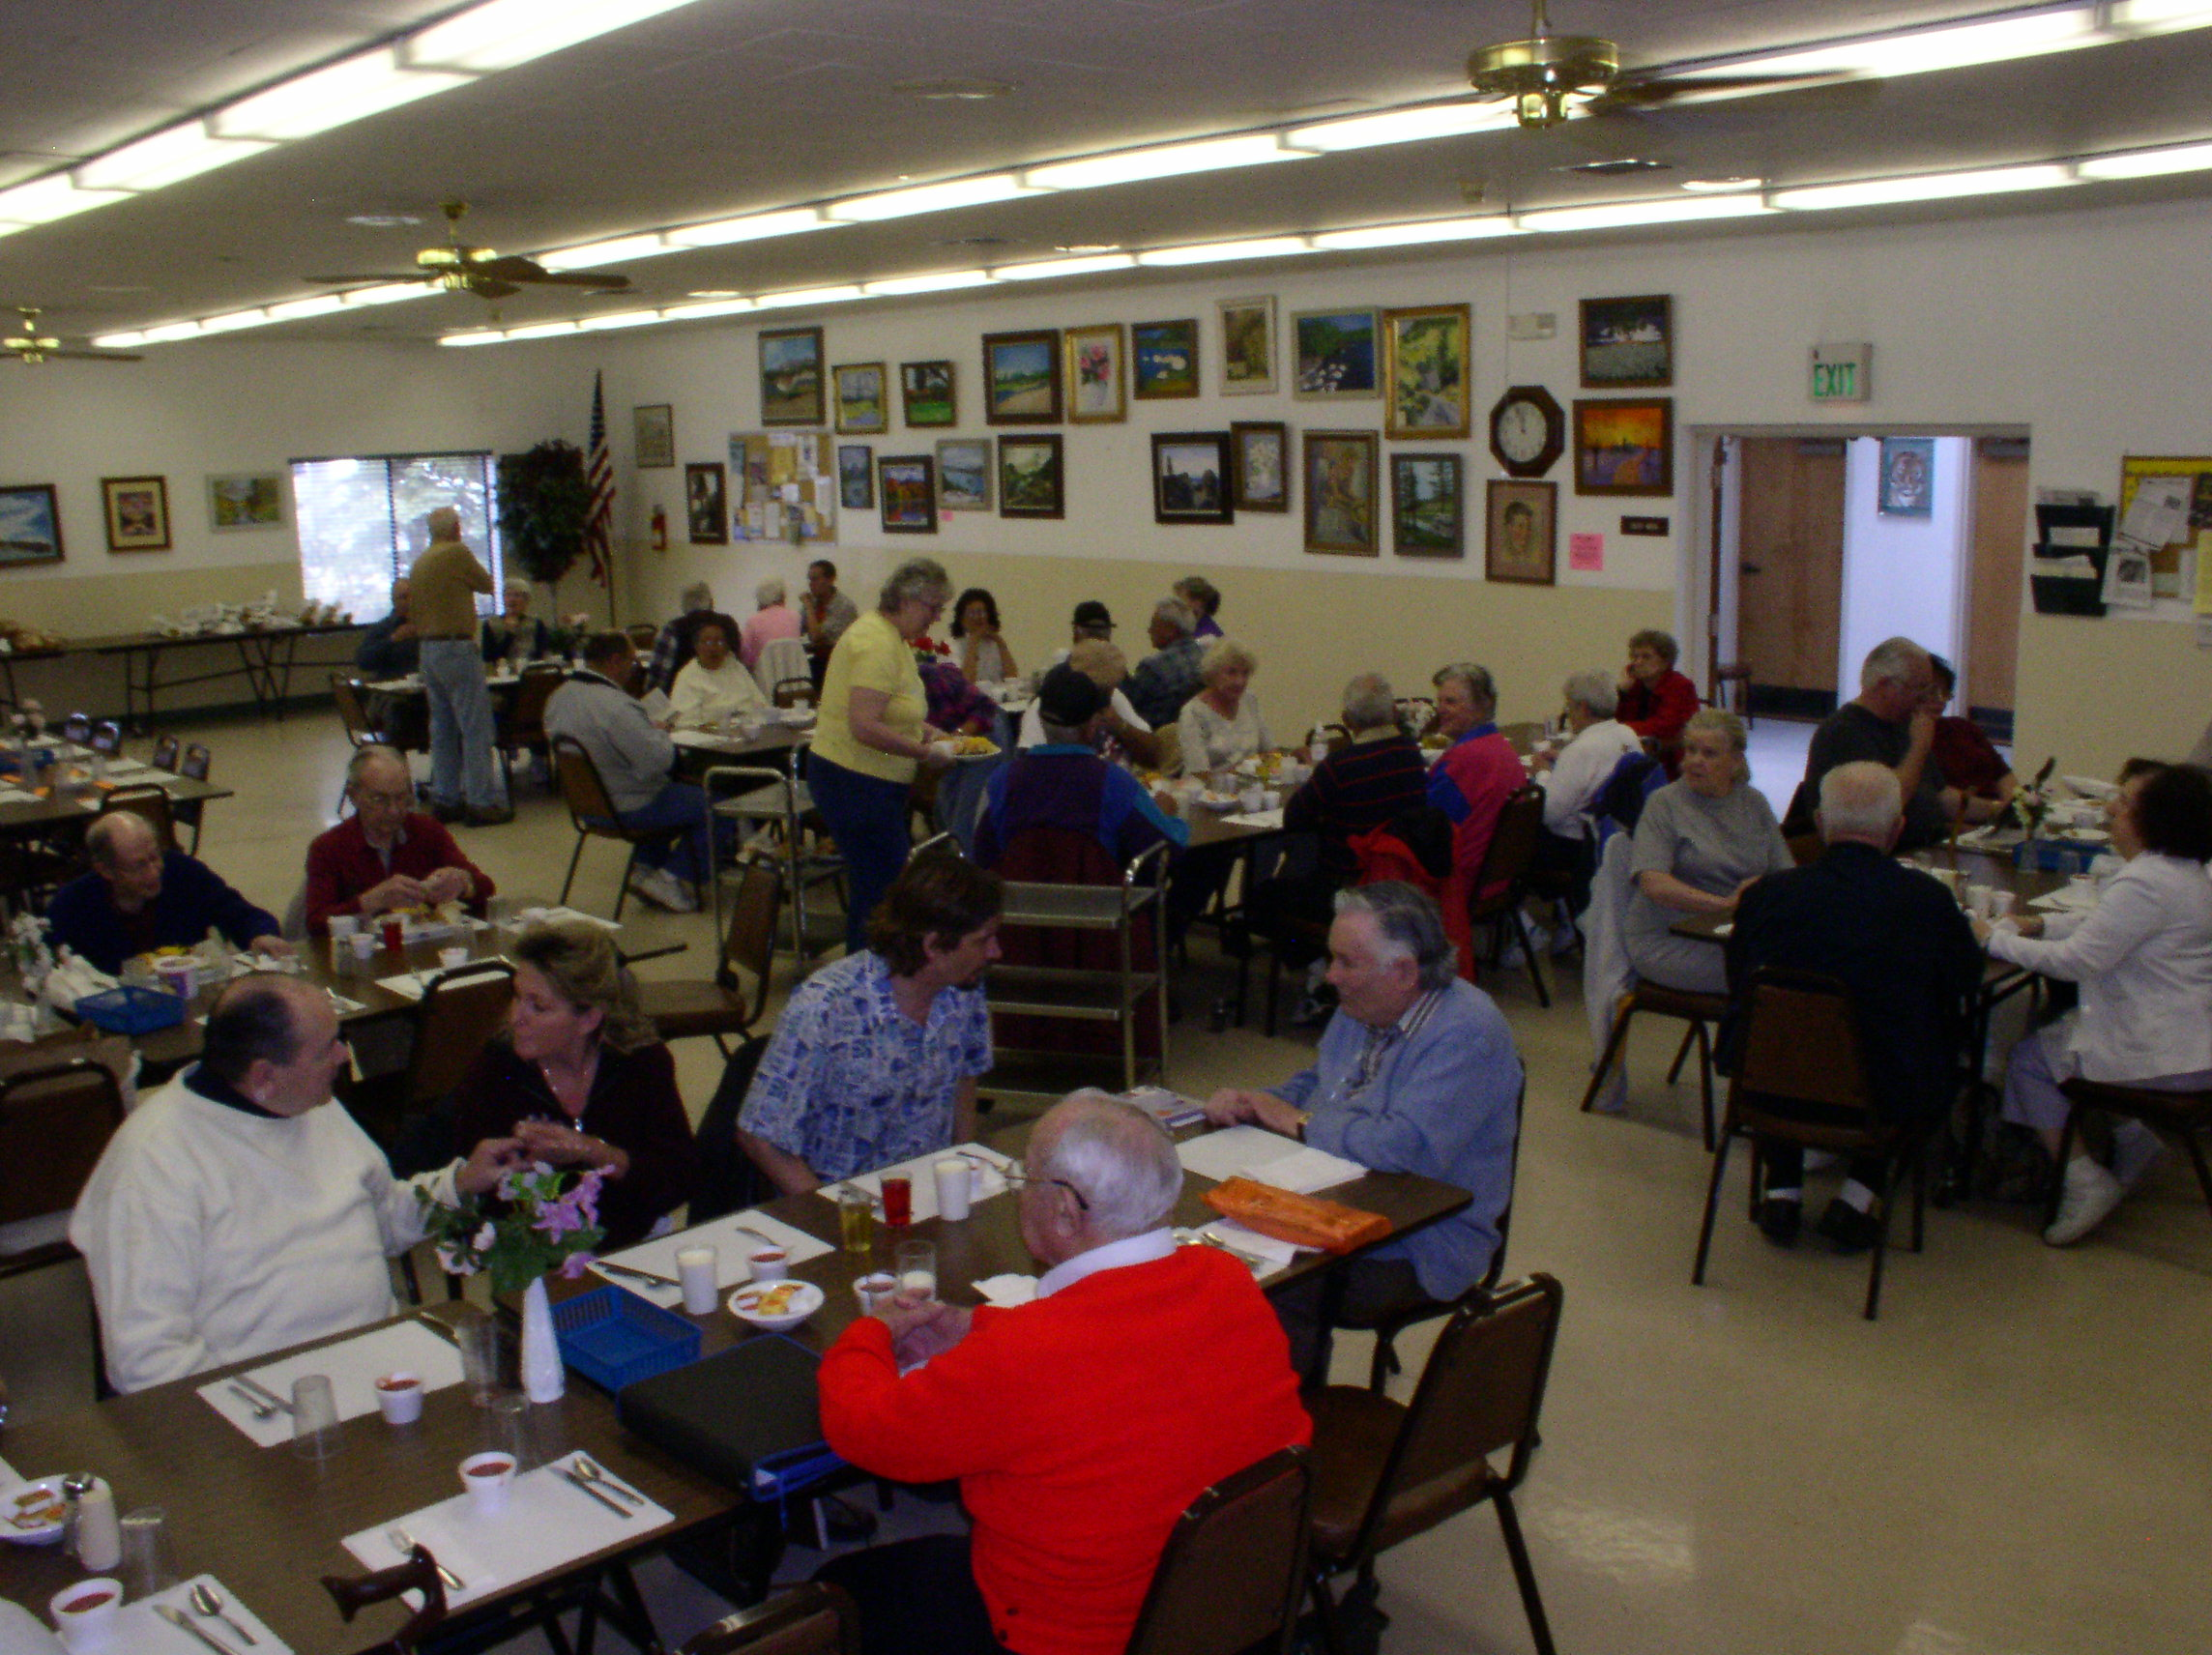 People eating lunch at Senior Center